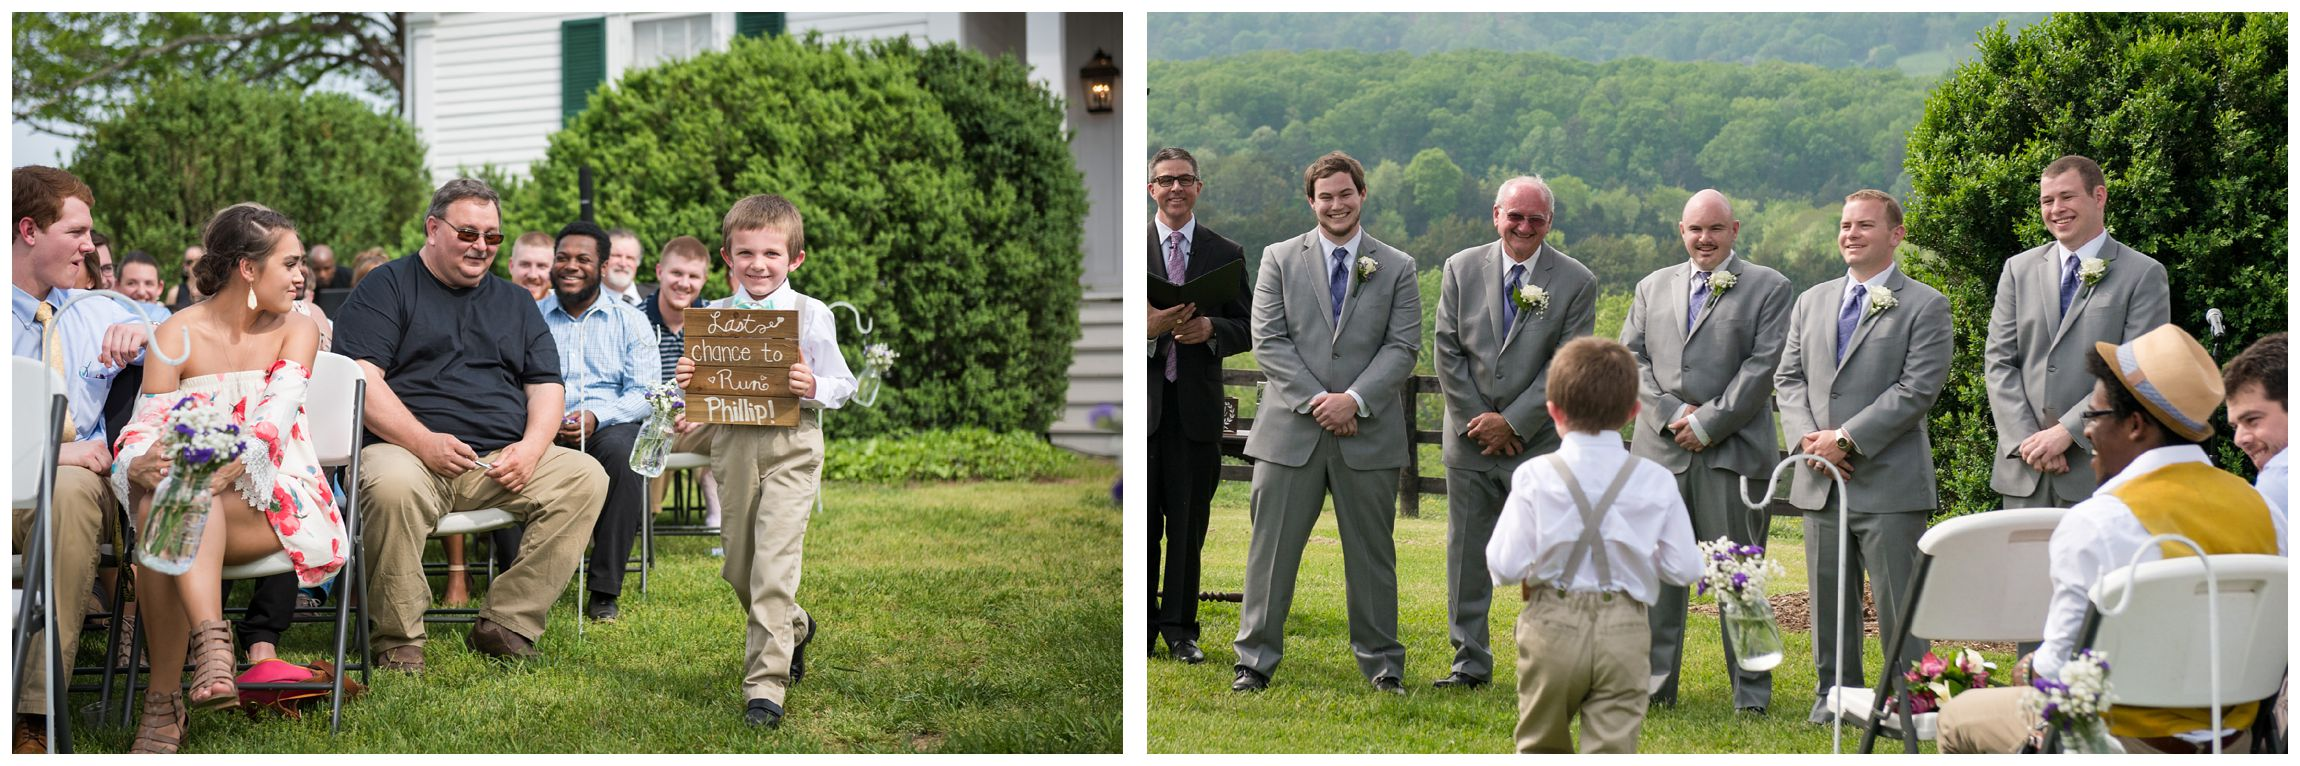 "ring bearer carries sign saying ""Last chance to run"" during wedding ceremony at Wolftrap Farm"